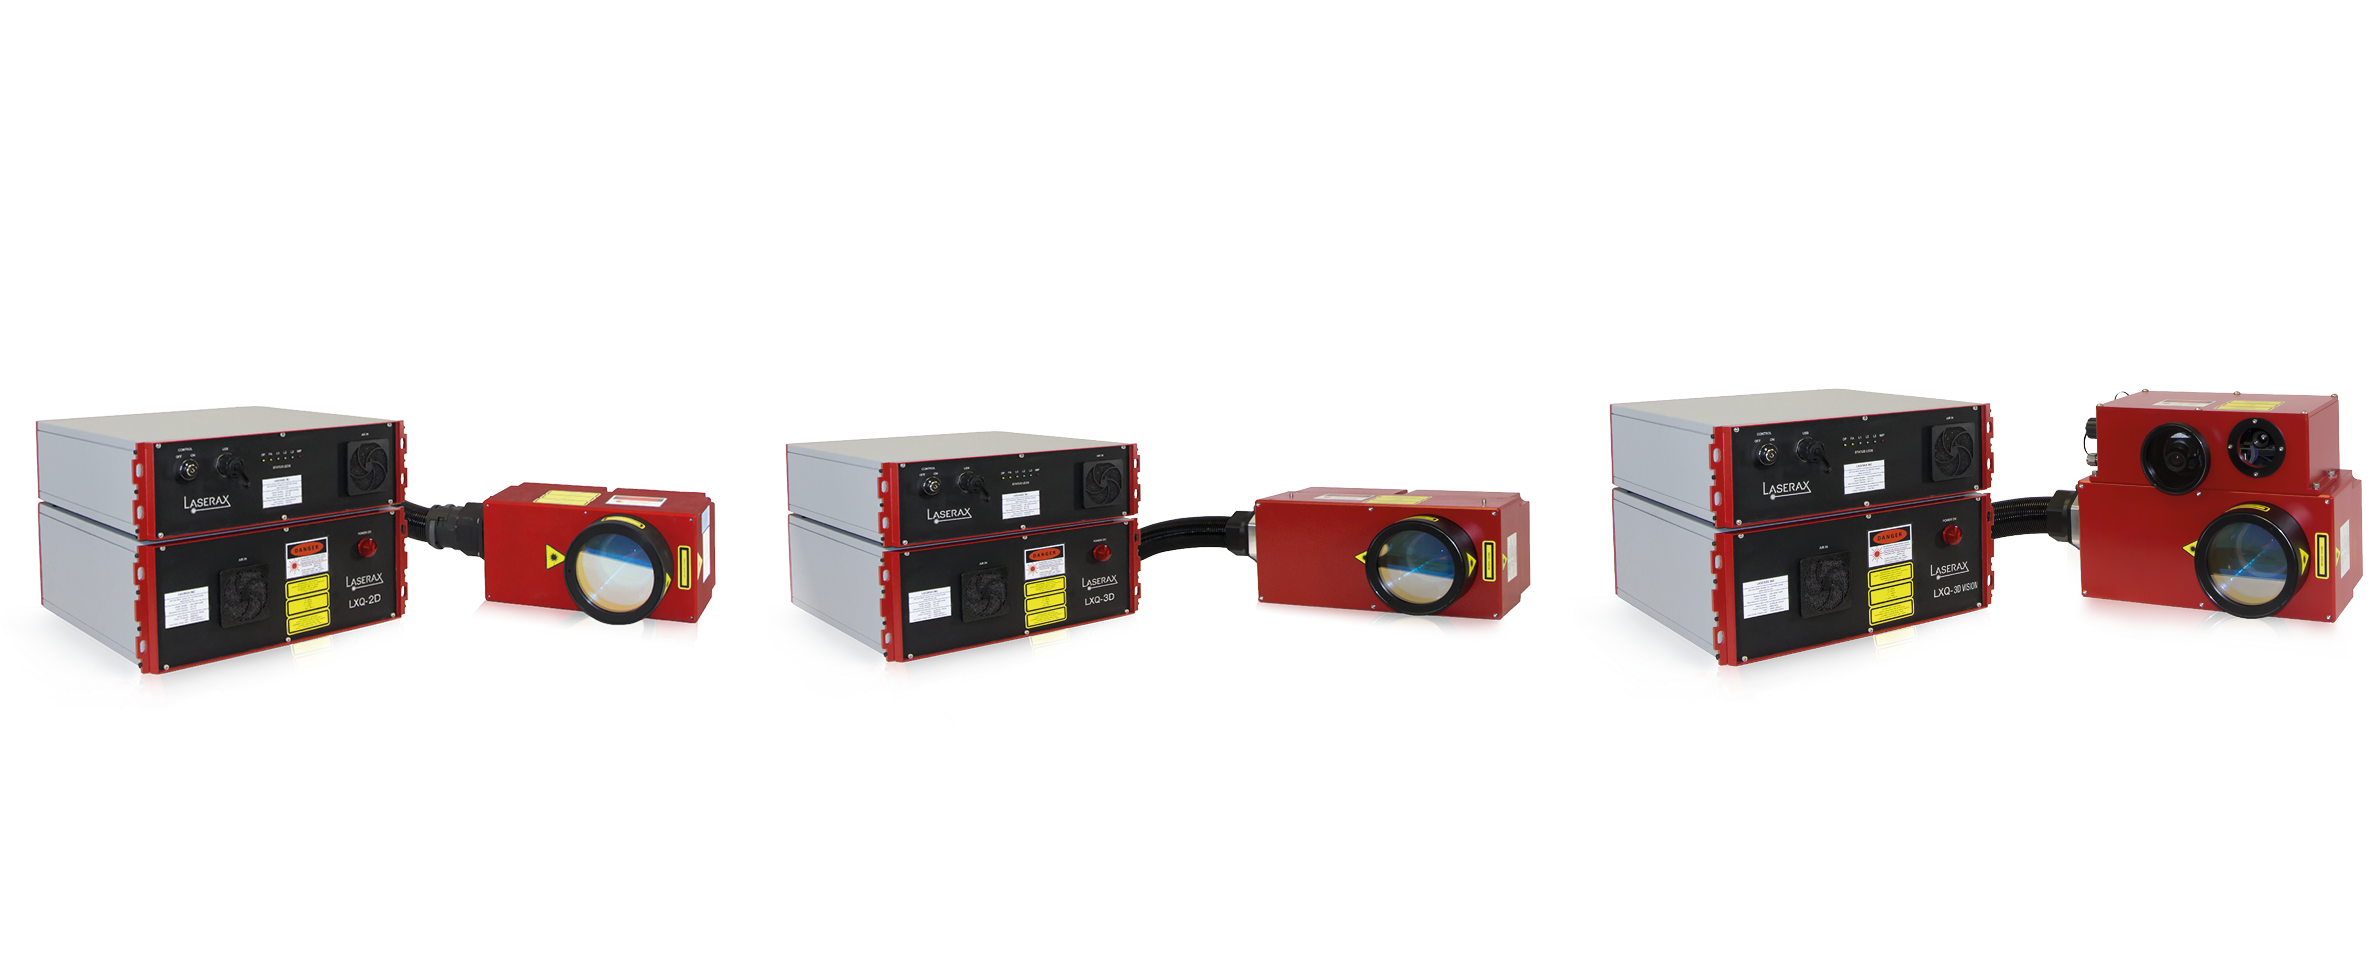 Laserax's Lasers LXQ, LXQ 3D and LWQ 3D Vision